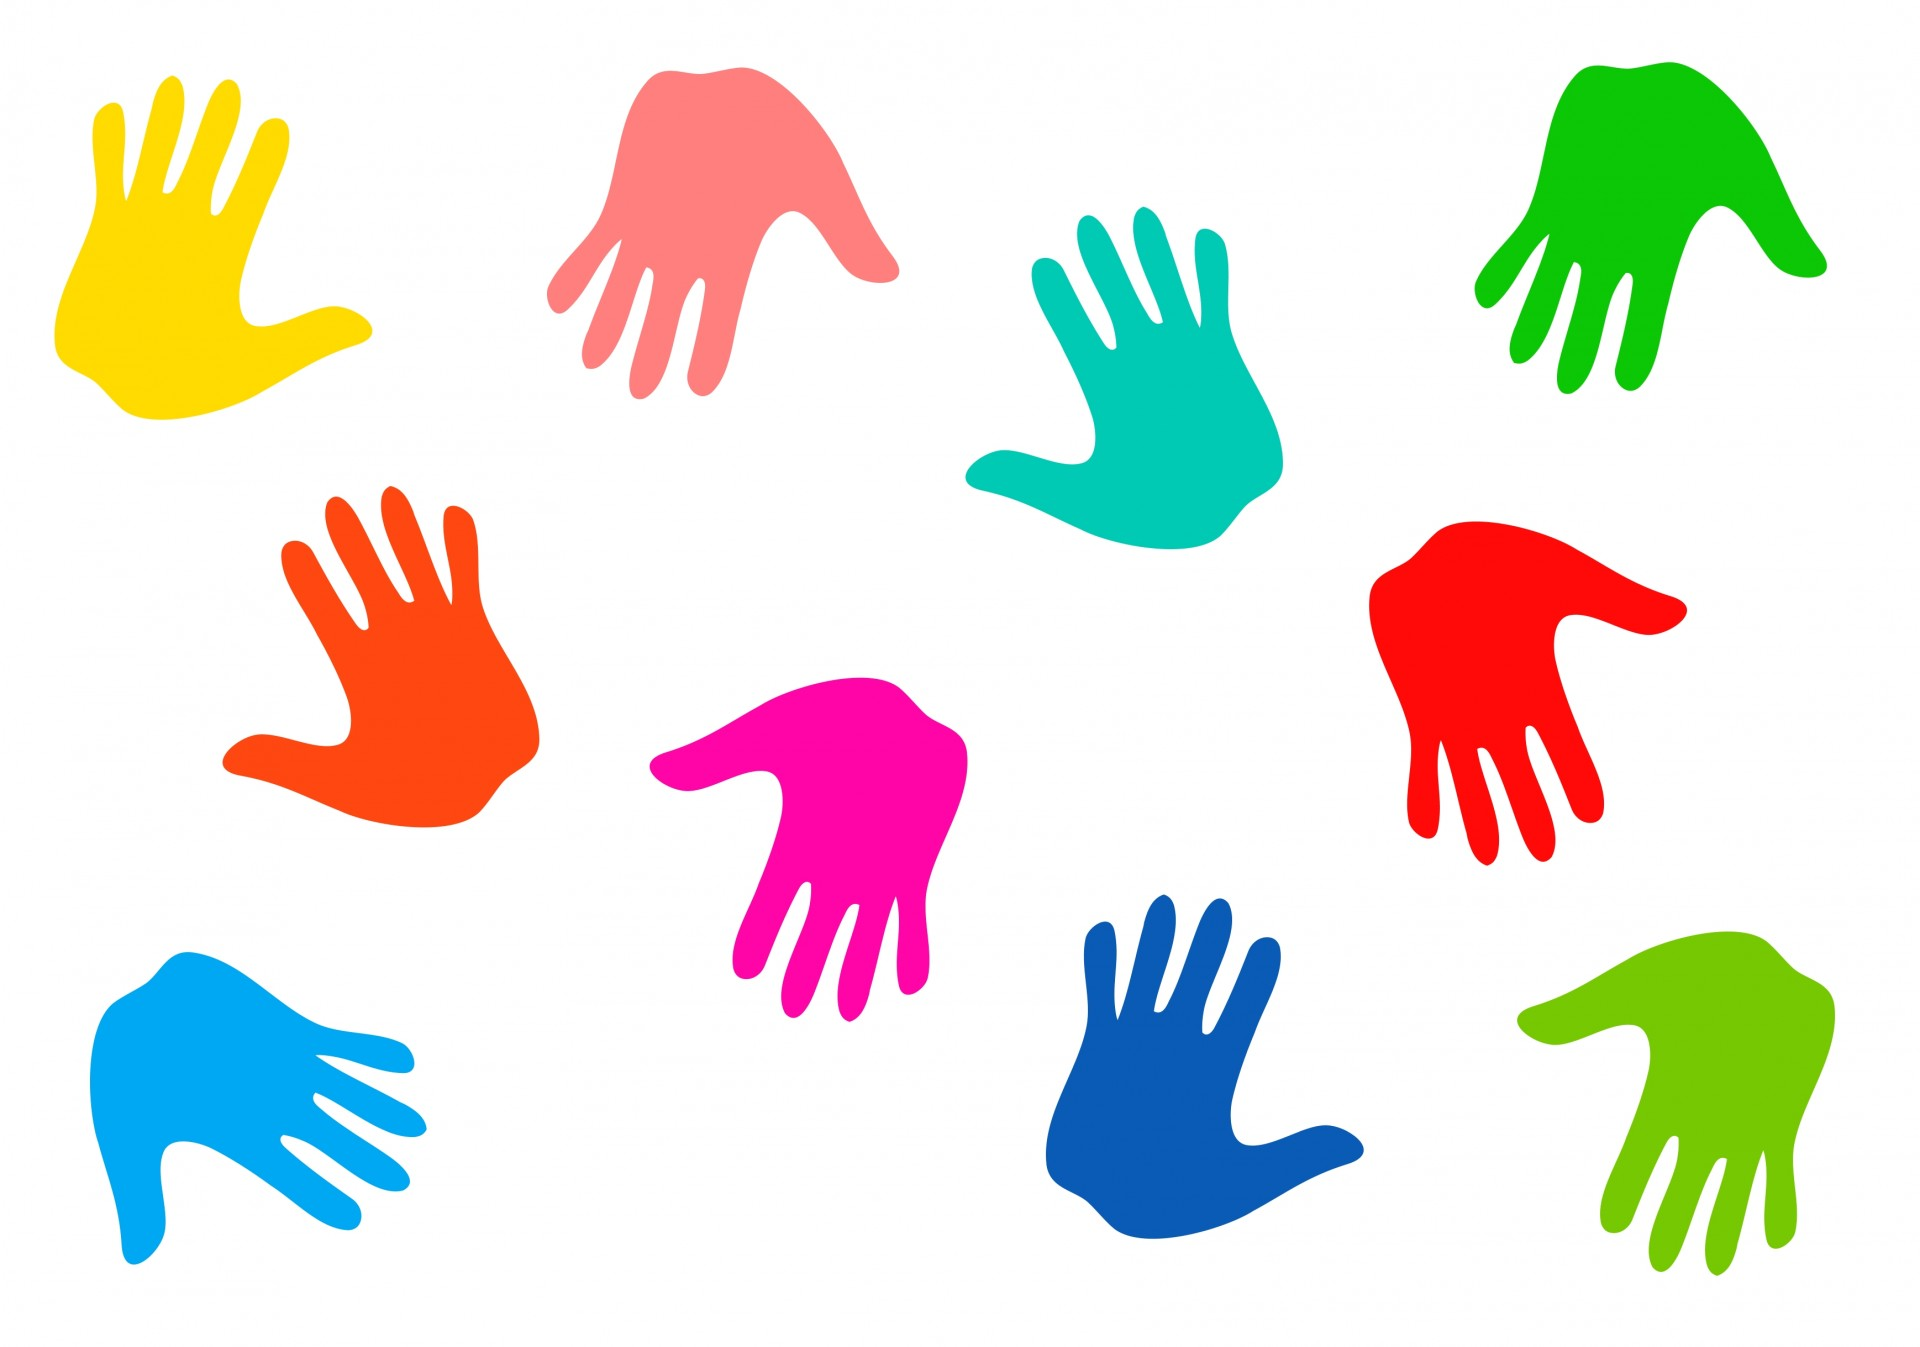 colourful-handprints.jpg